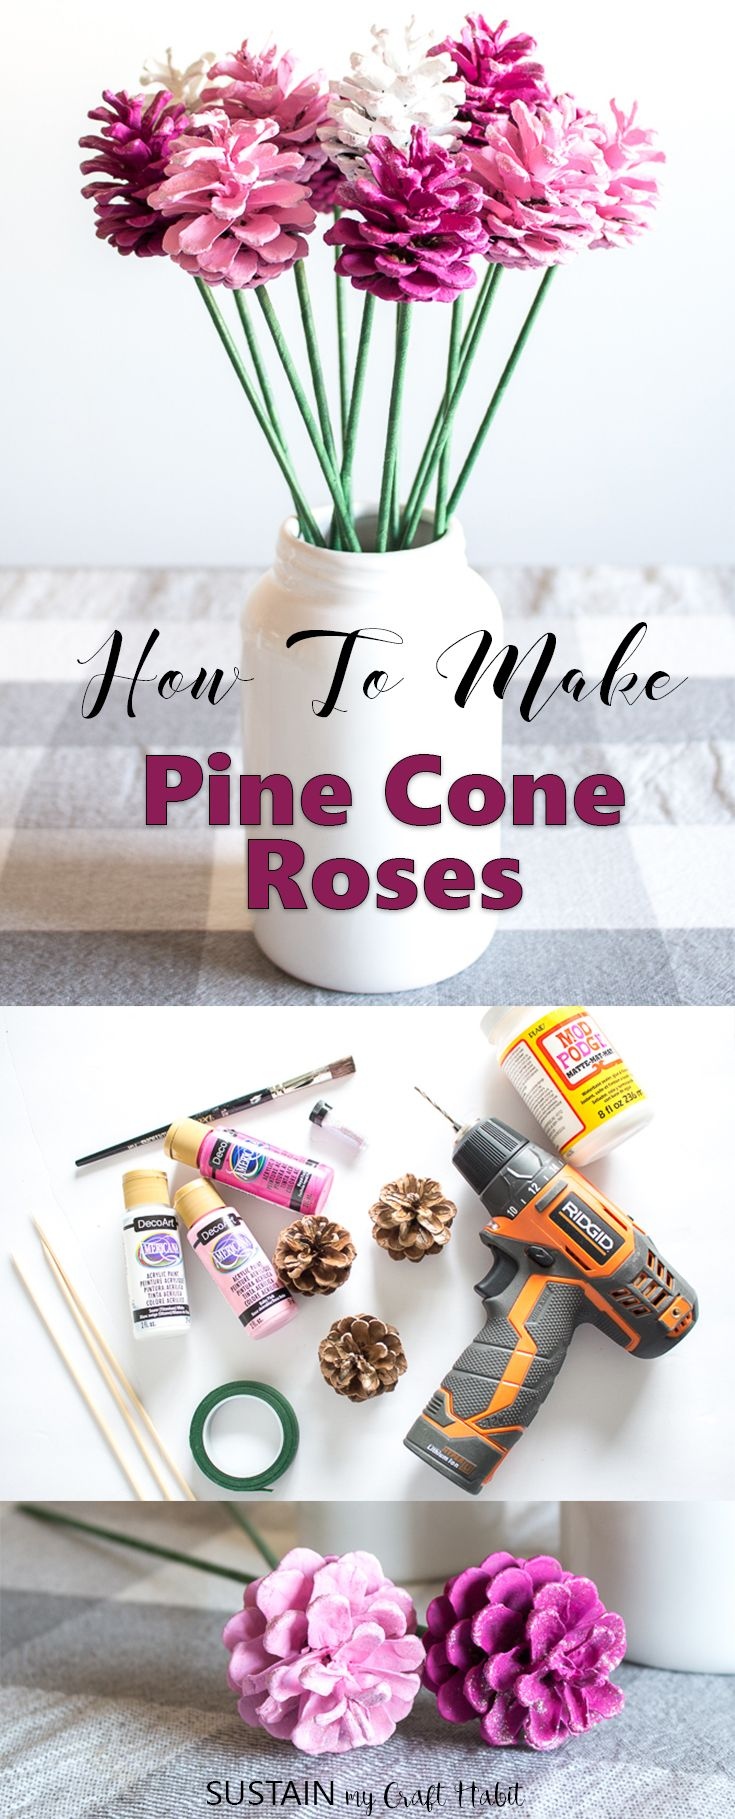 So simple and pretty!!! Learn how to make Pine Cone Roses